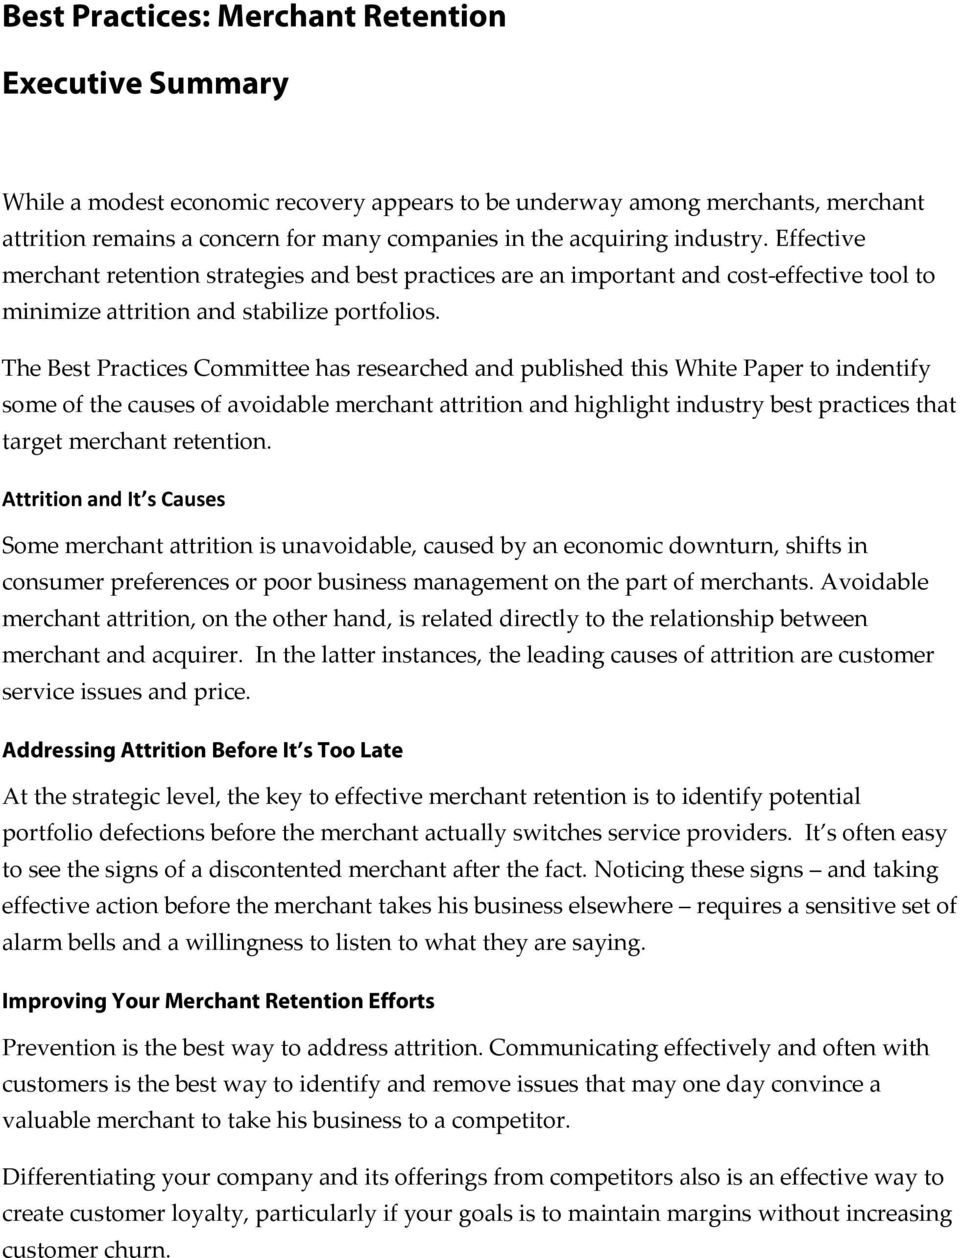 The Best Practices Committee has researched and published this White Paper to indentify some of the causes of avoidable merchant attrition and highlight industry best practices that target merchant